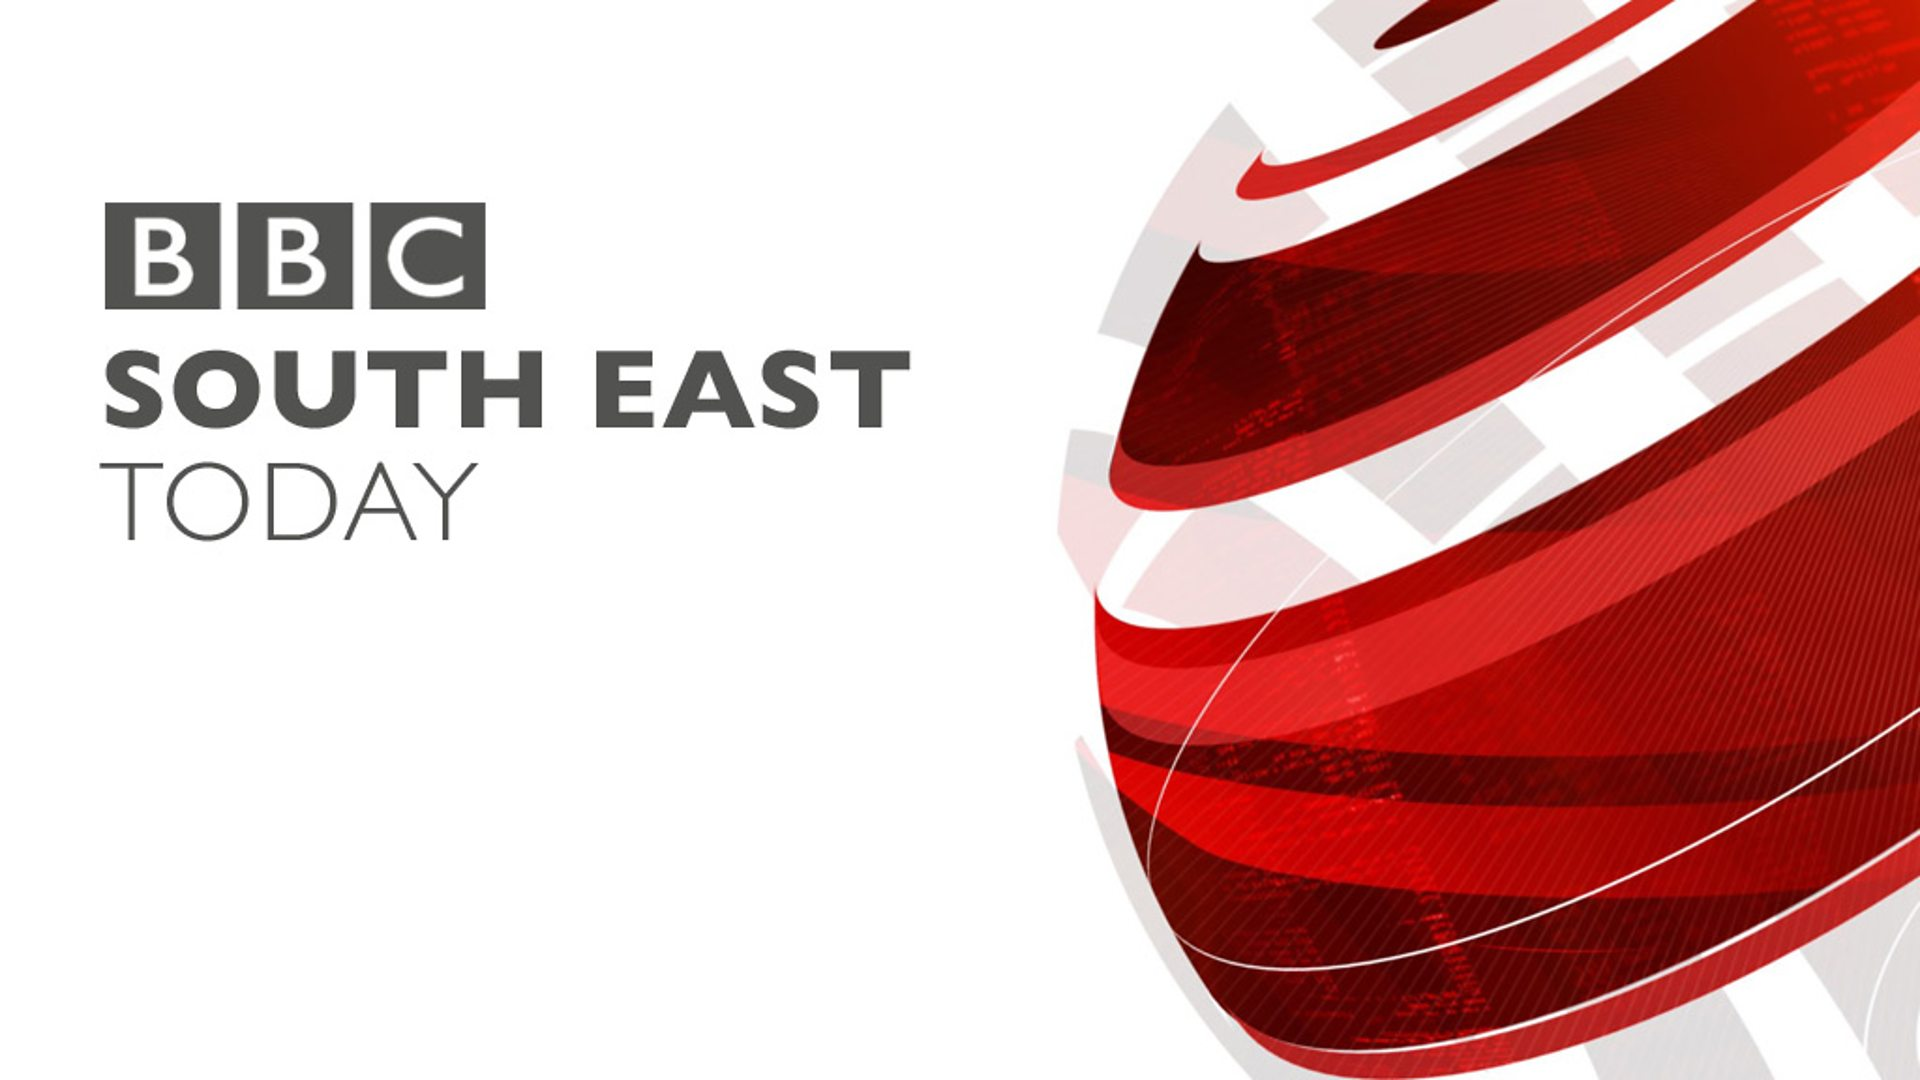 BBC South East Today logo.jpg